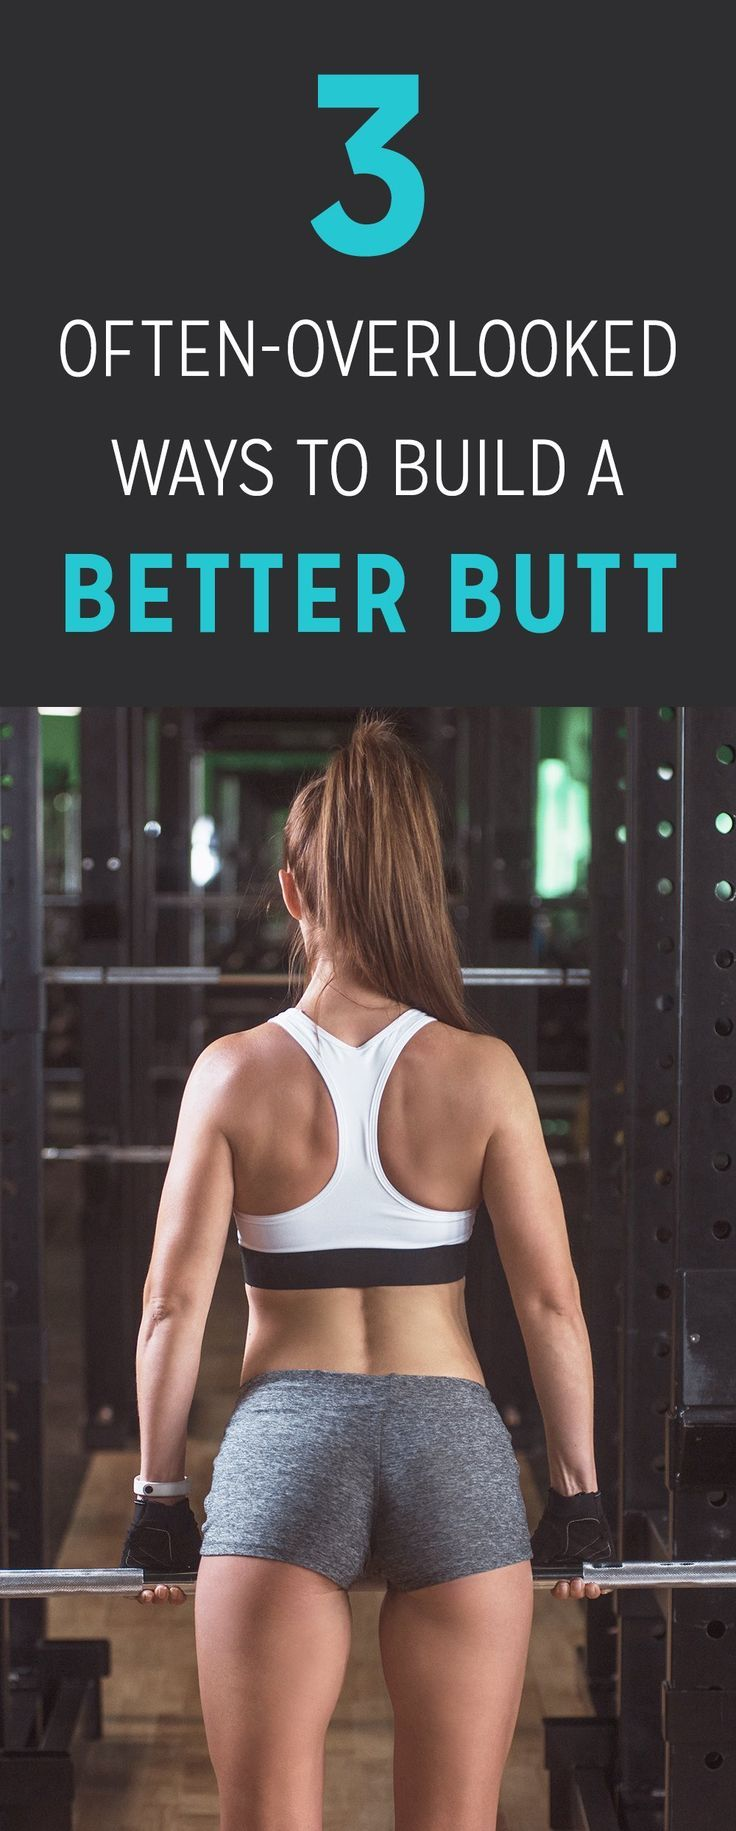 3 Often-Overlooked Ways to Build a Better Butt – #Build #Butt #OftenOverlooked #…